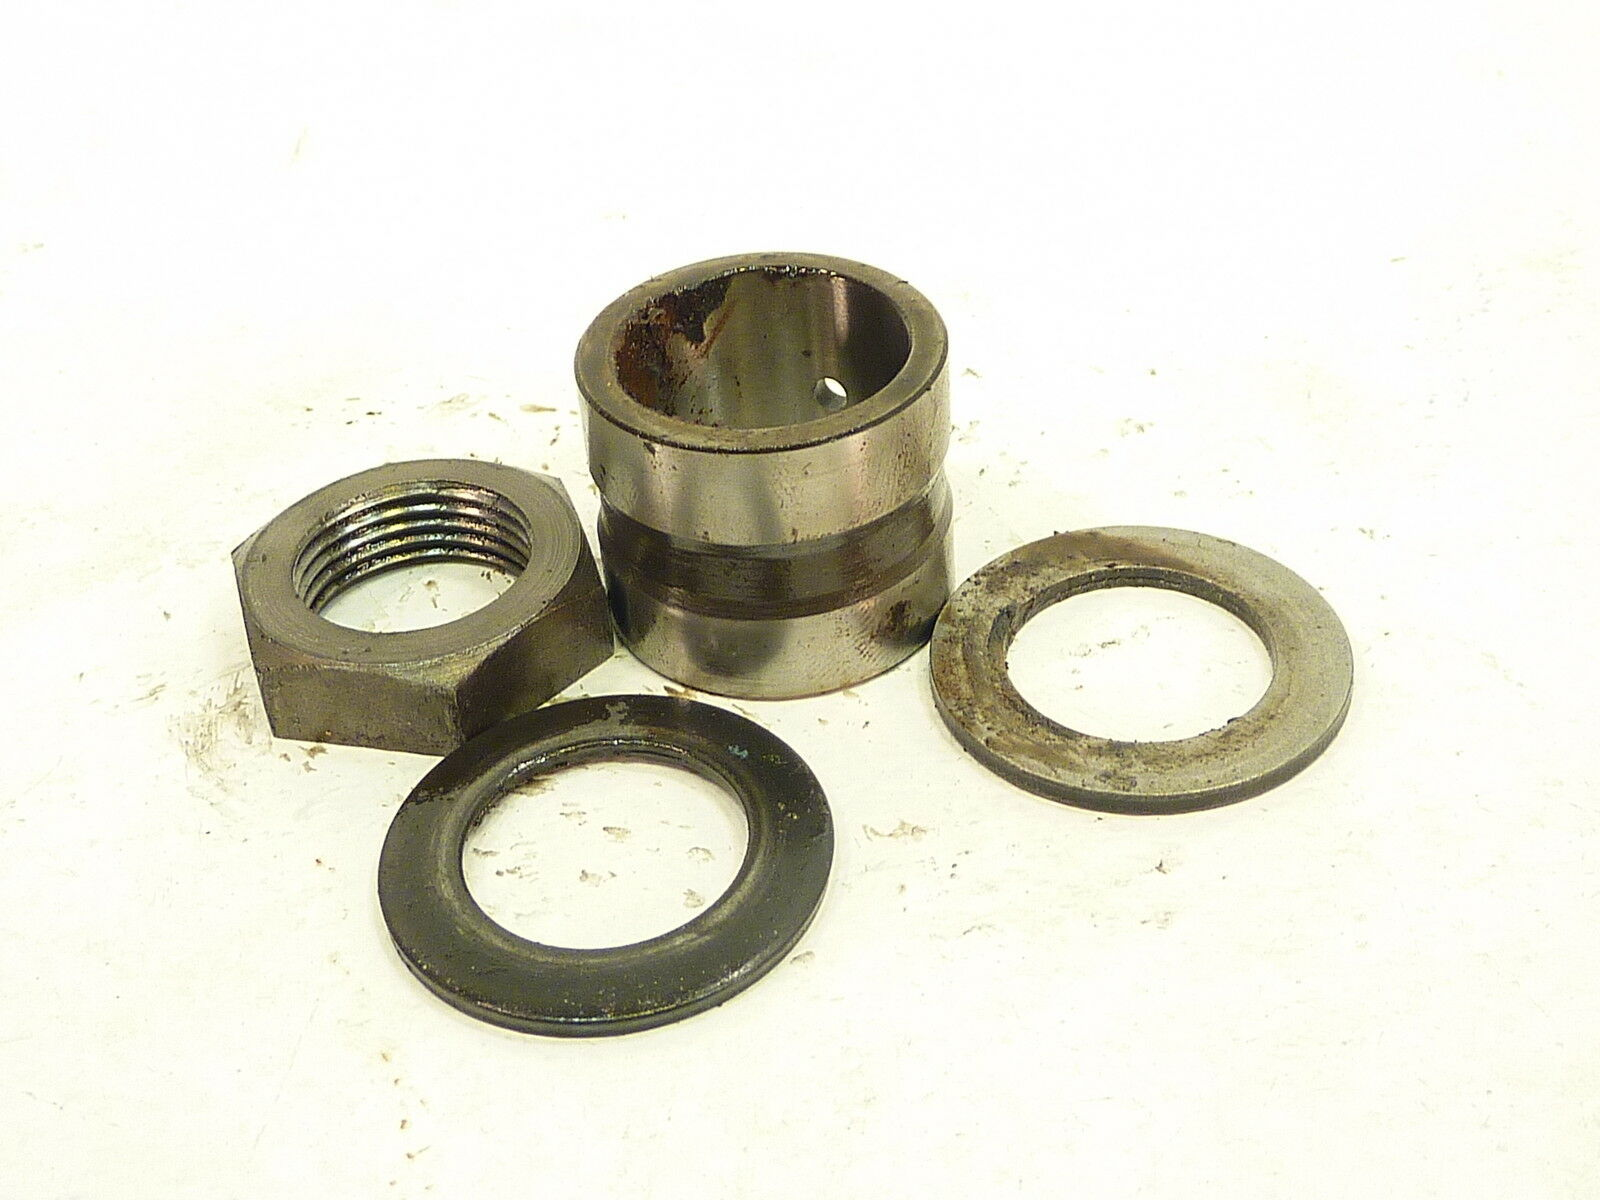 Honda TRX250 TRX 250 Four Trax 1985 85 front spindle frame axle nuts washers